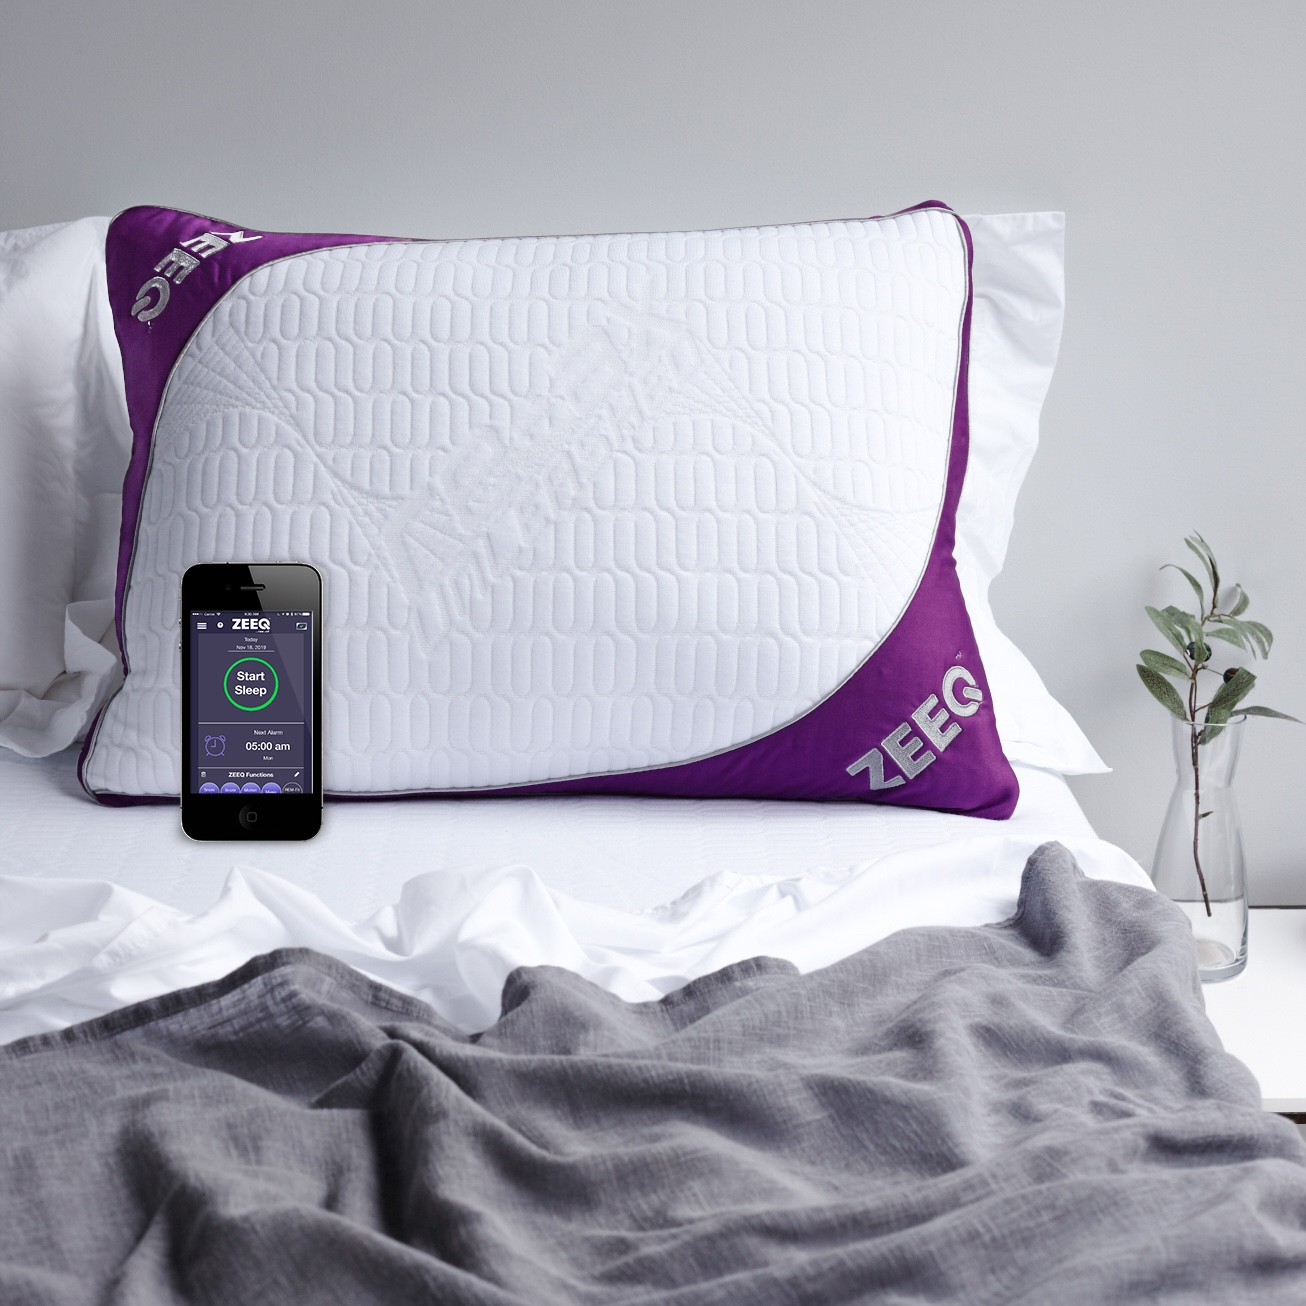 Rem-Fit's ZEEQ Smart Pillow